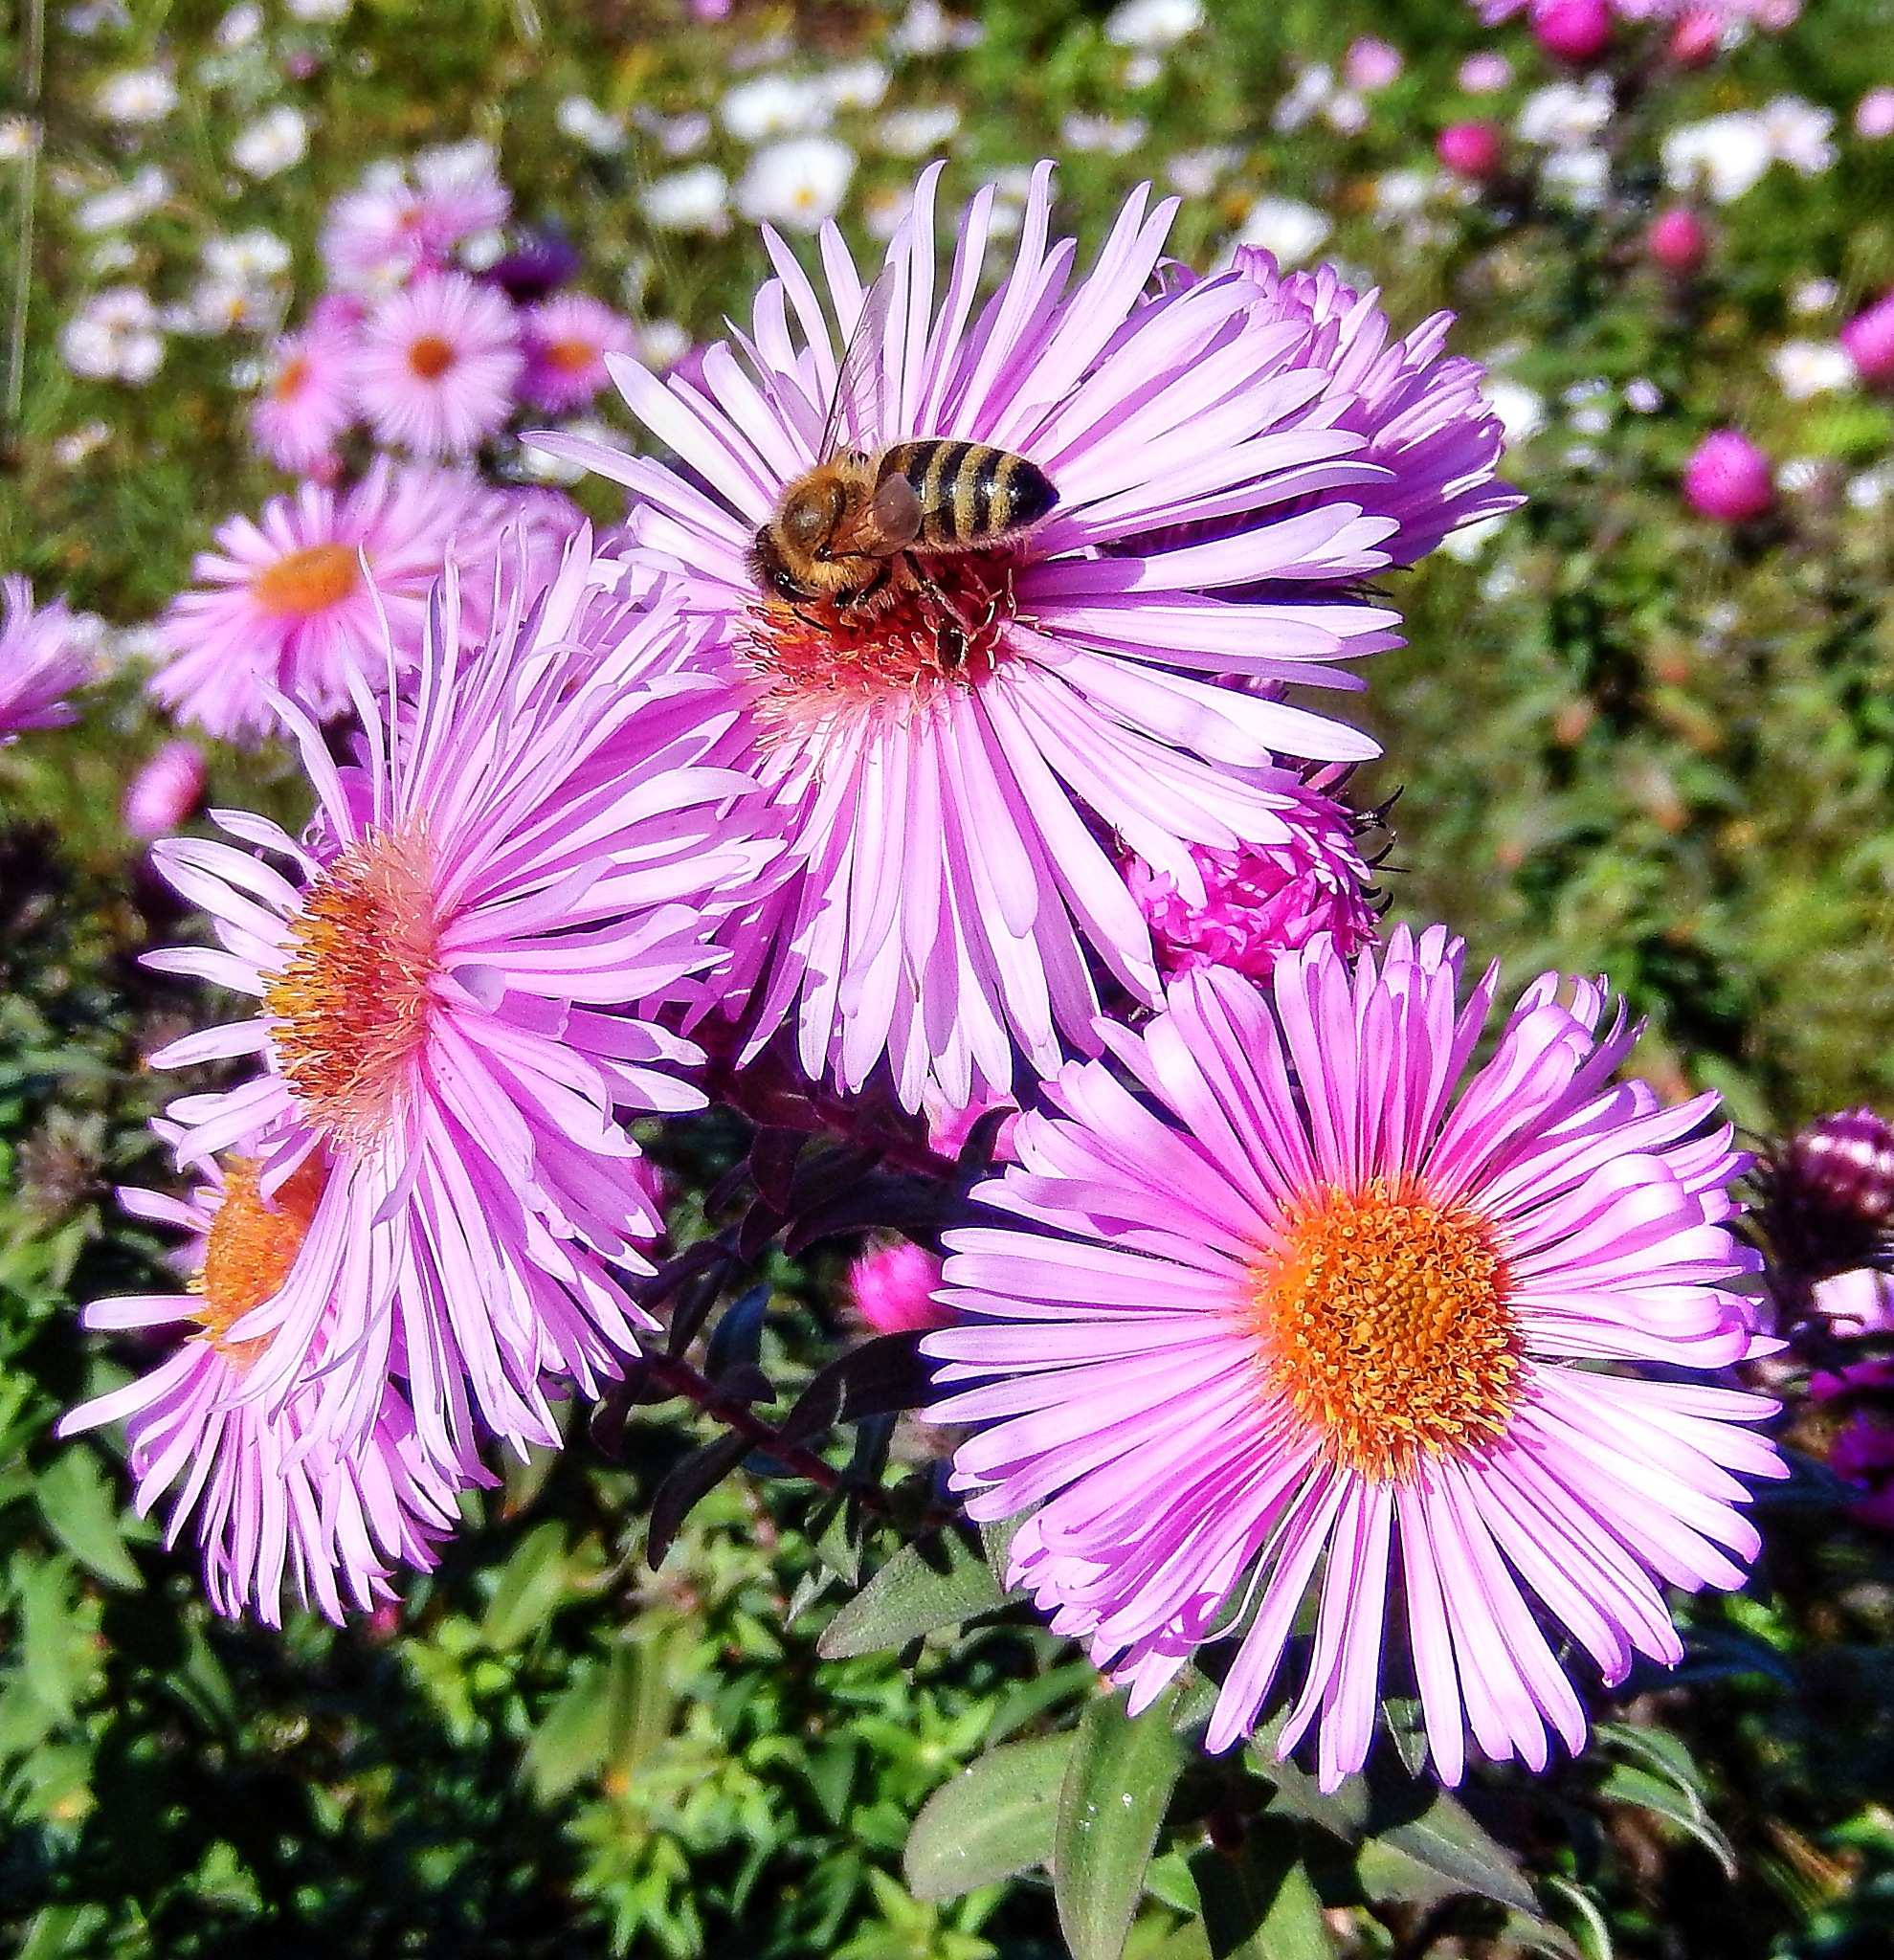 Aster and bee by zvnktomasevic